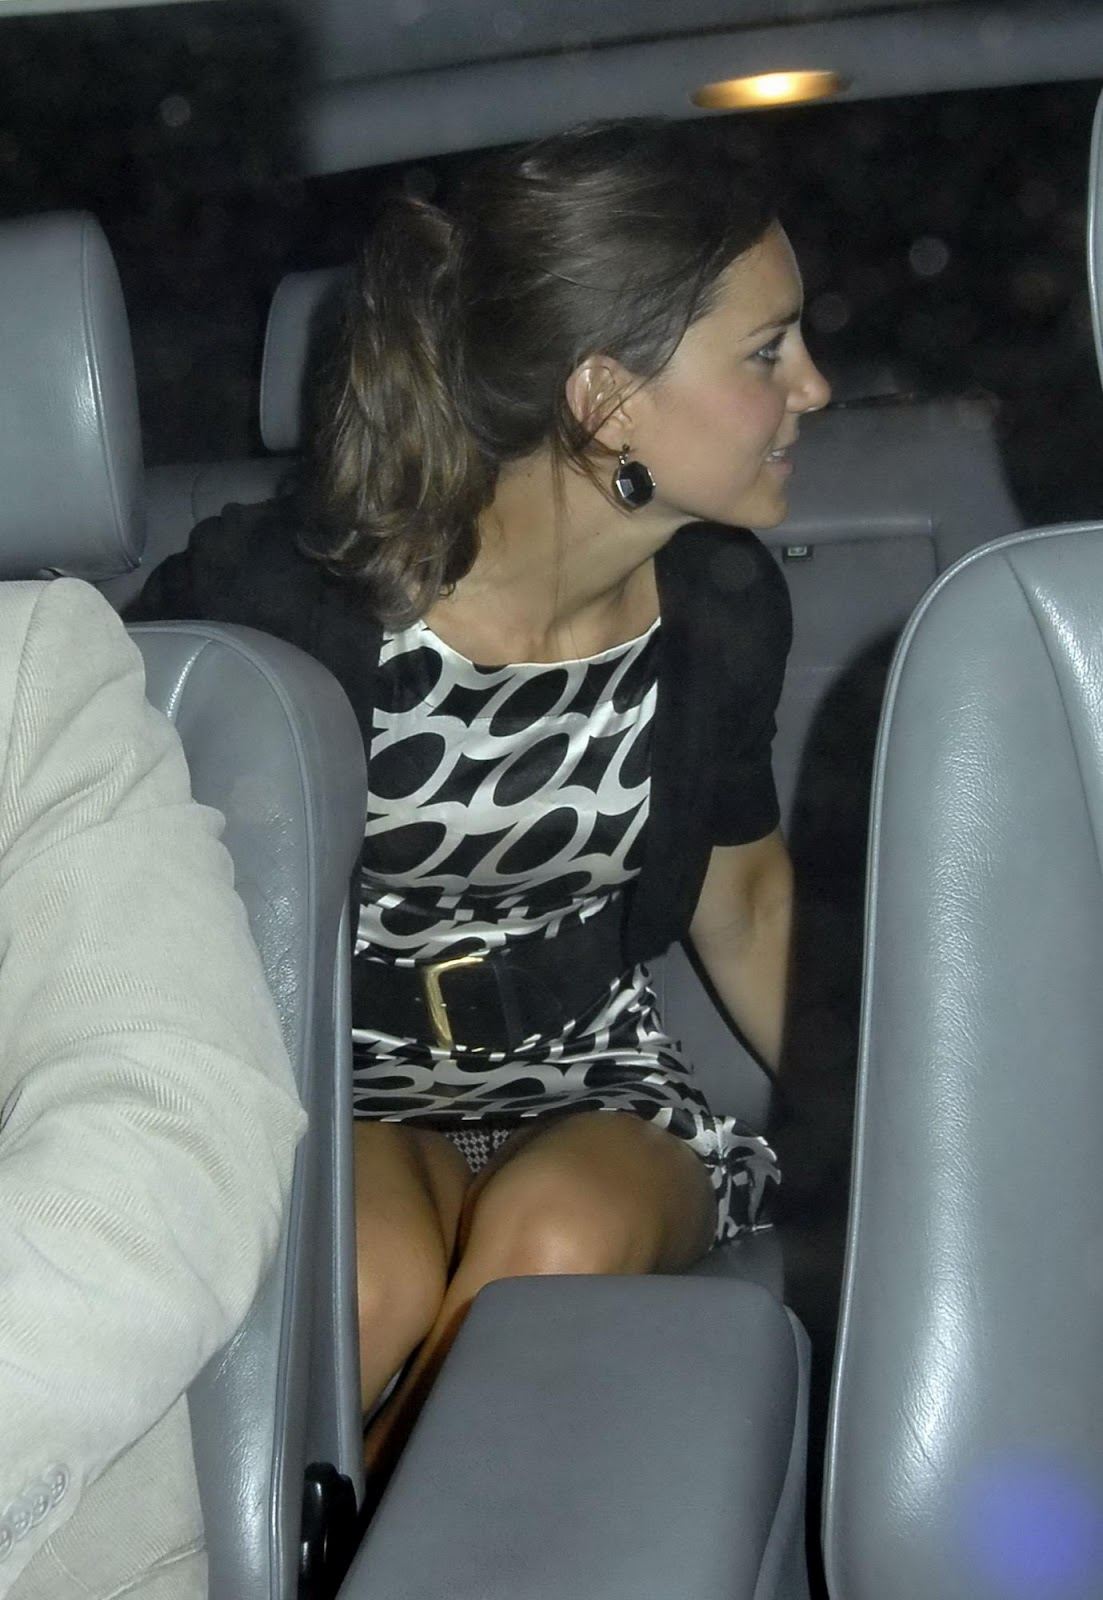 Upskirt in a car